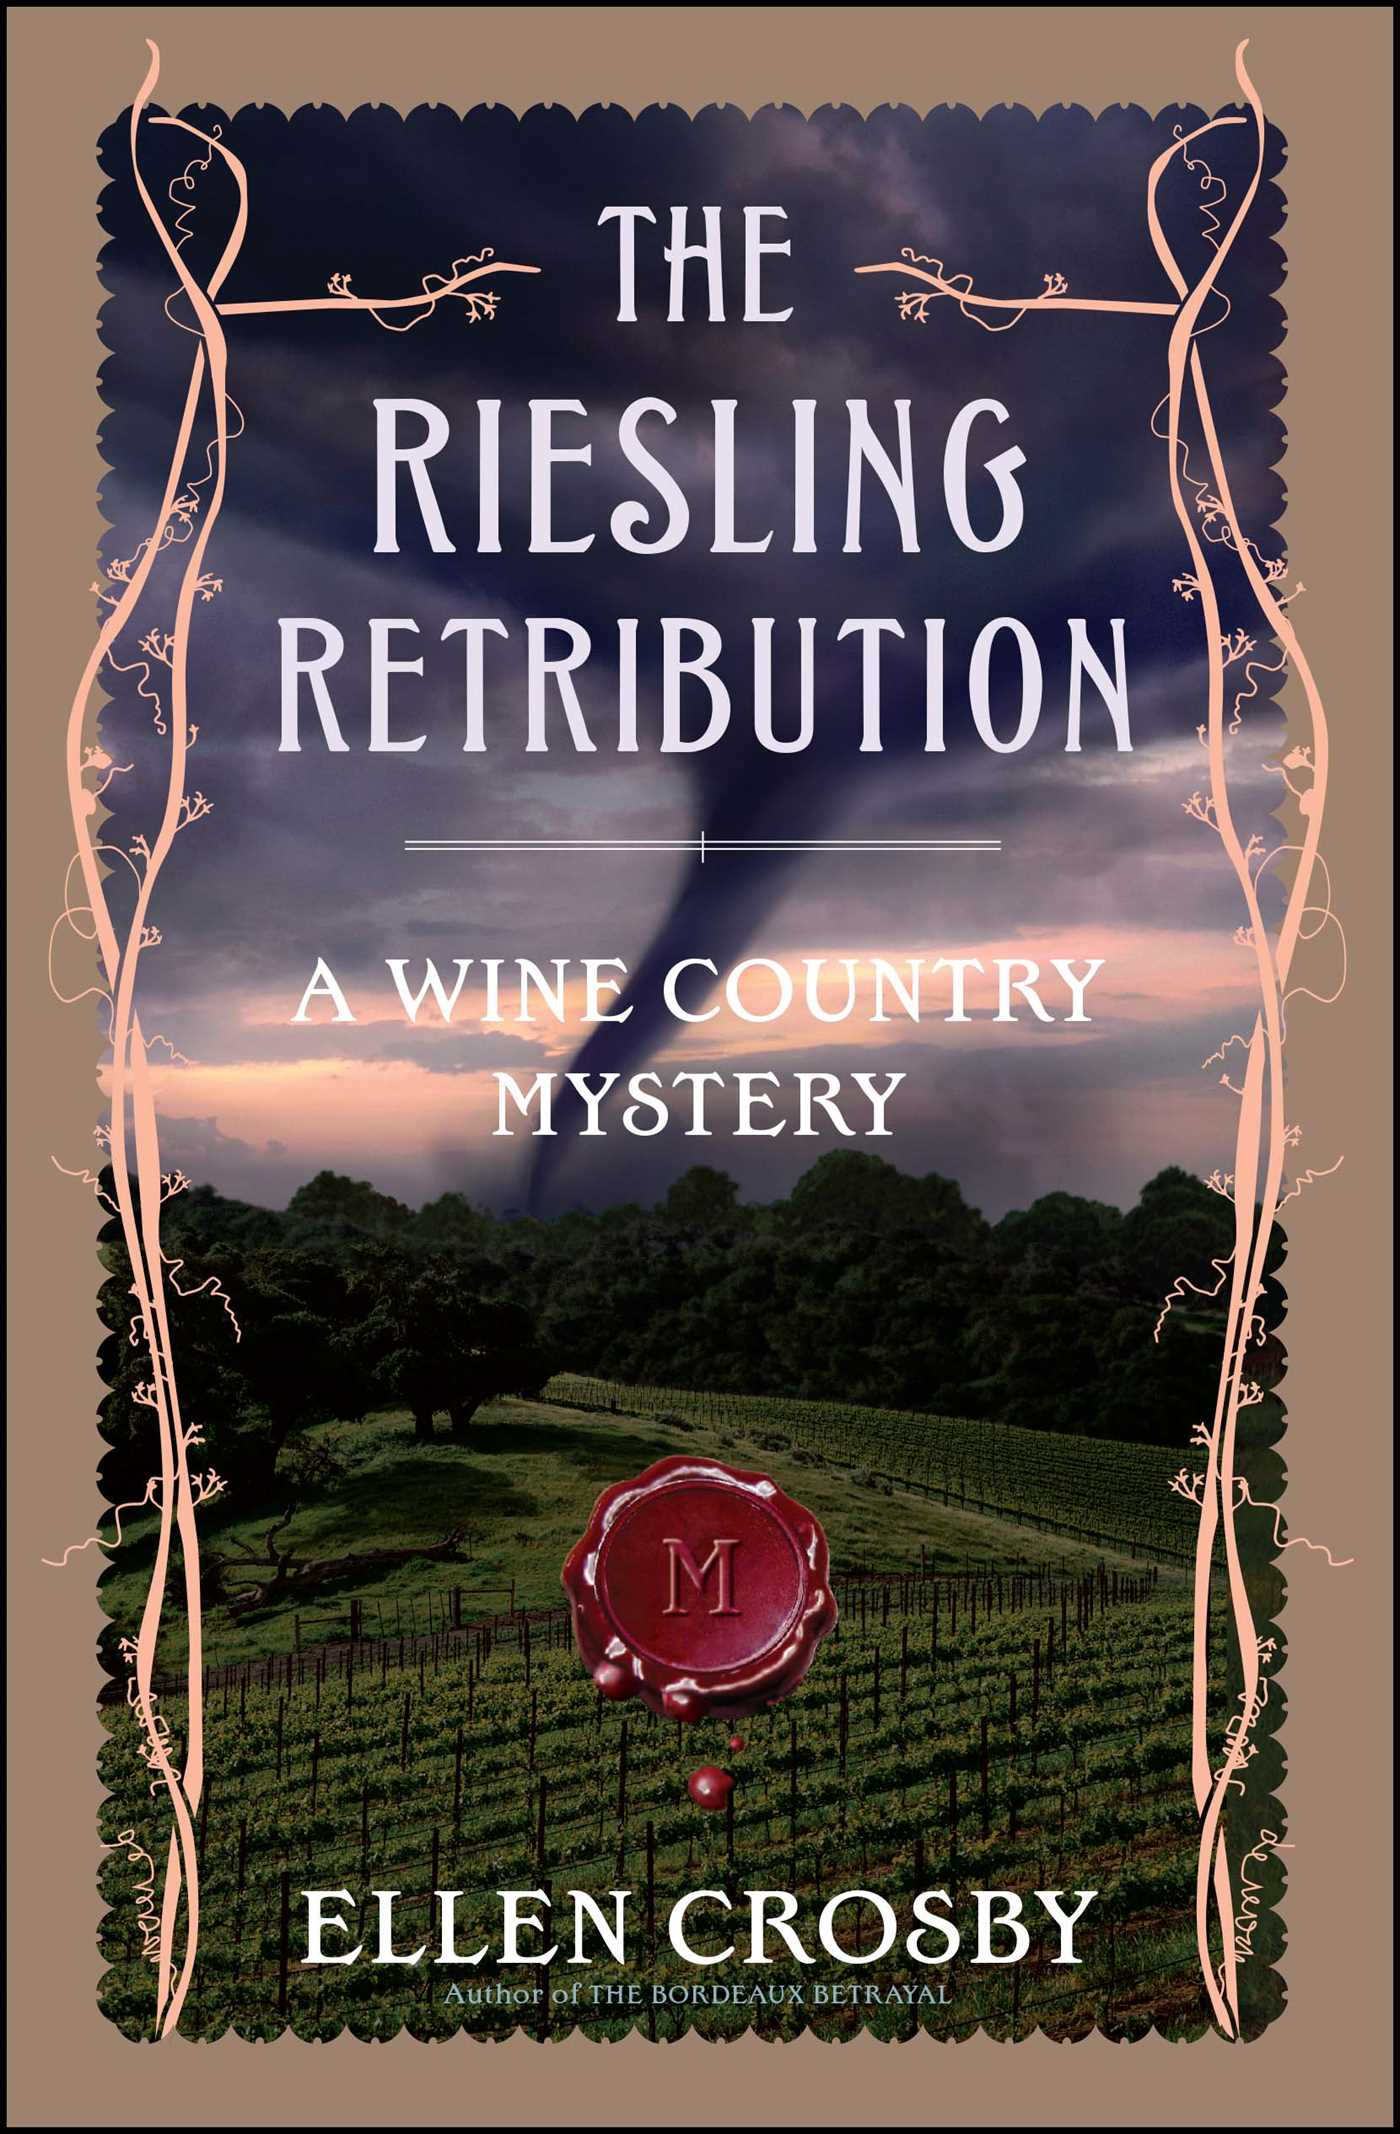 The riesling retribution 9781439165997 hr